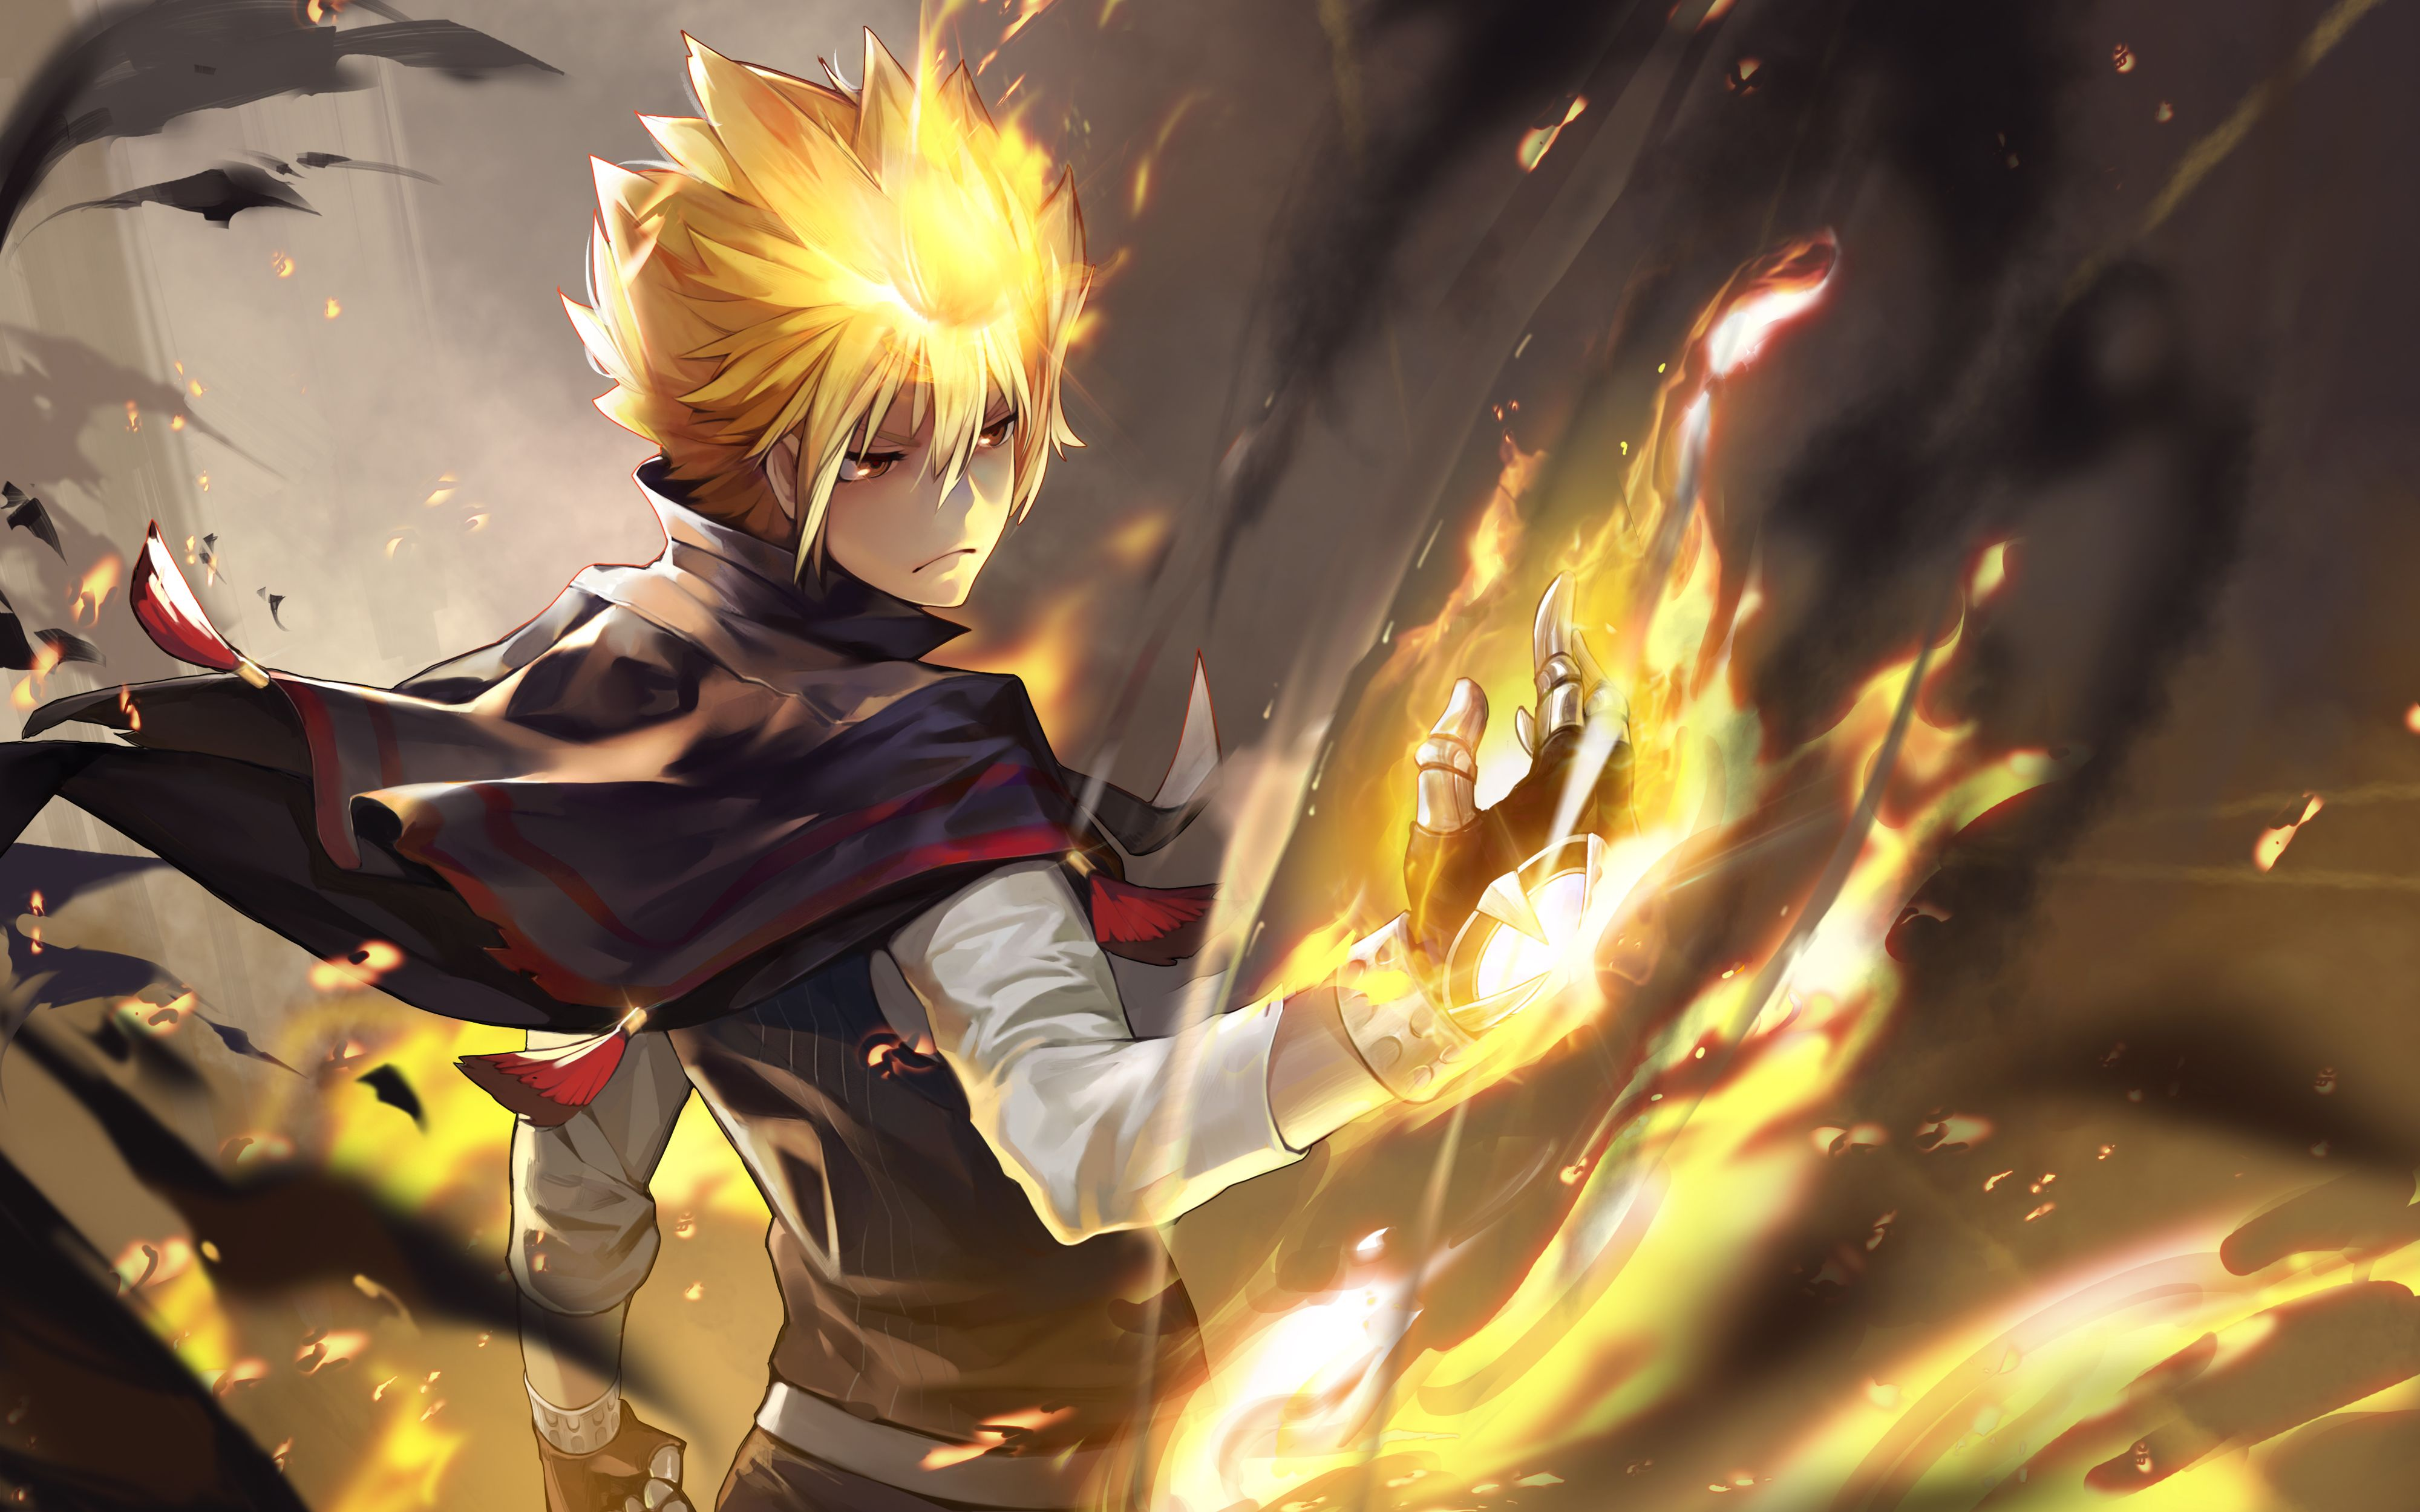 Giotto katekyō hitman reborn fire anime boy